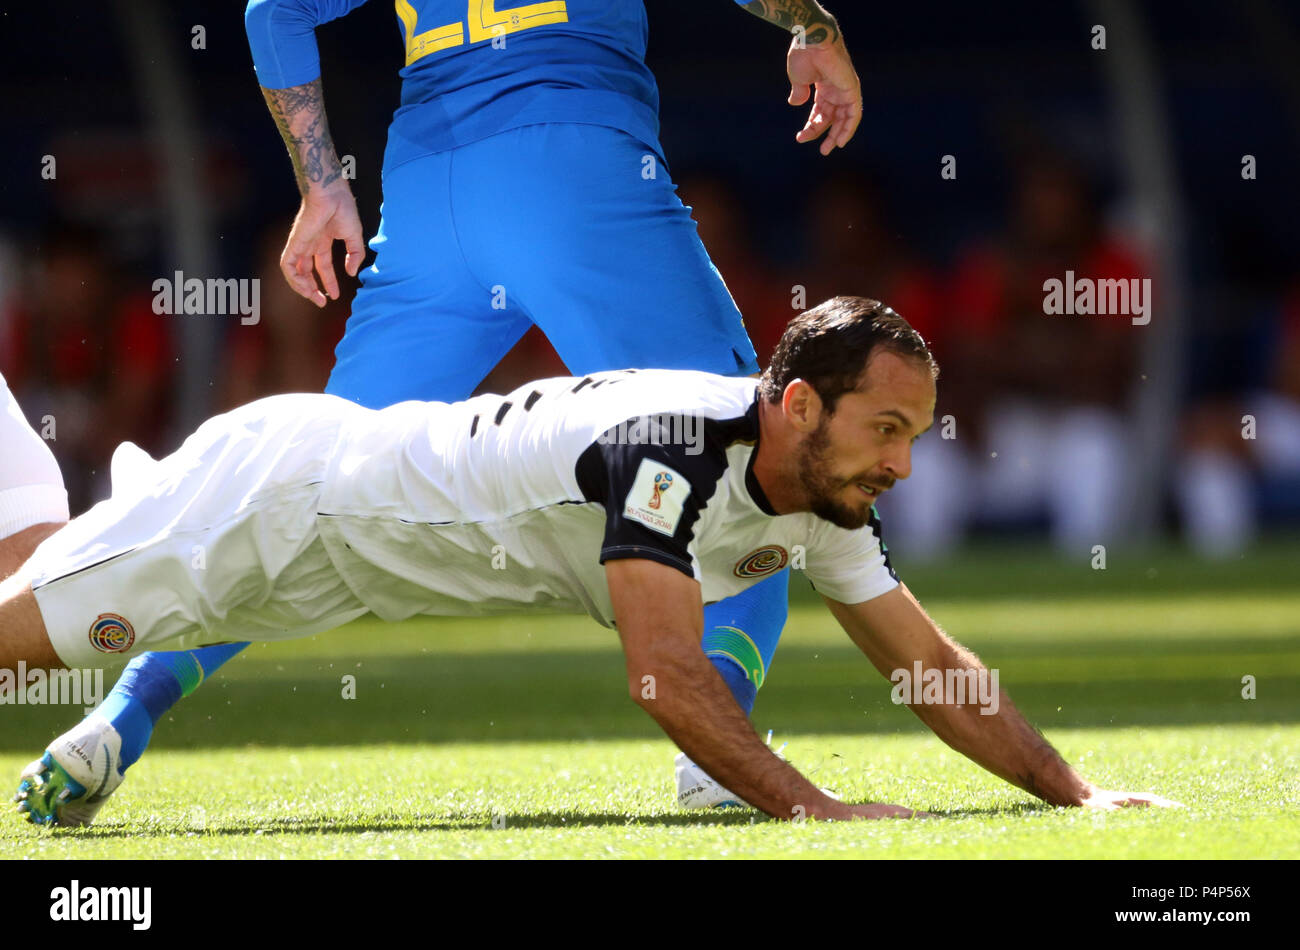 Saint Petersburg, Russia. 22nd June 2018.  UTERO in action during the Fifa World Cup Russia 2018, Group E, football match between BRAZIL V COSTARICA  IN Saint Petersburg Stadium. Credit: marco iacobucci/Alamy Live News - Stock Image